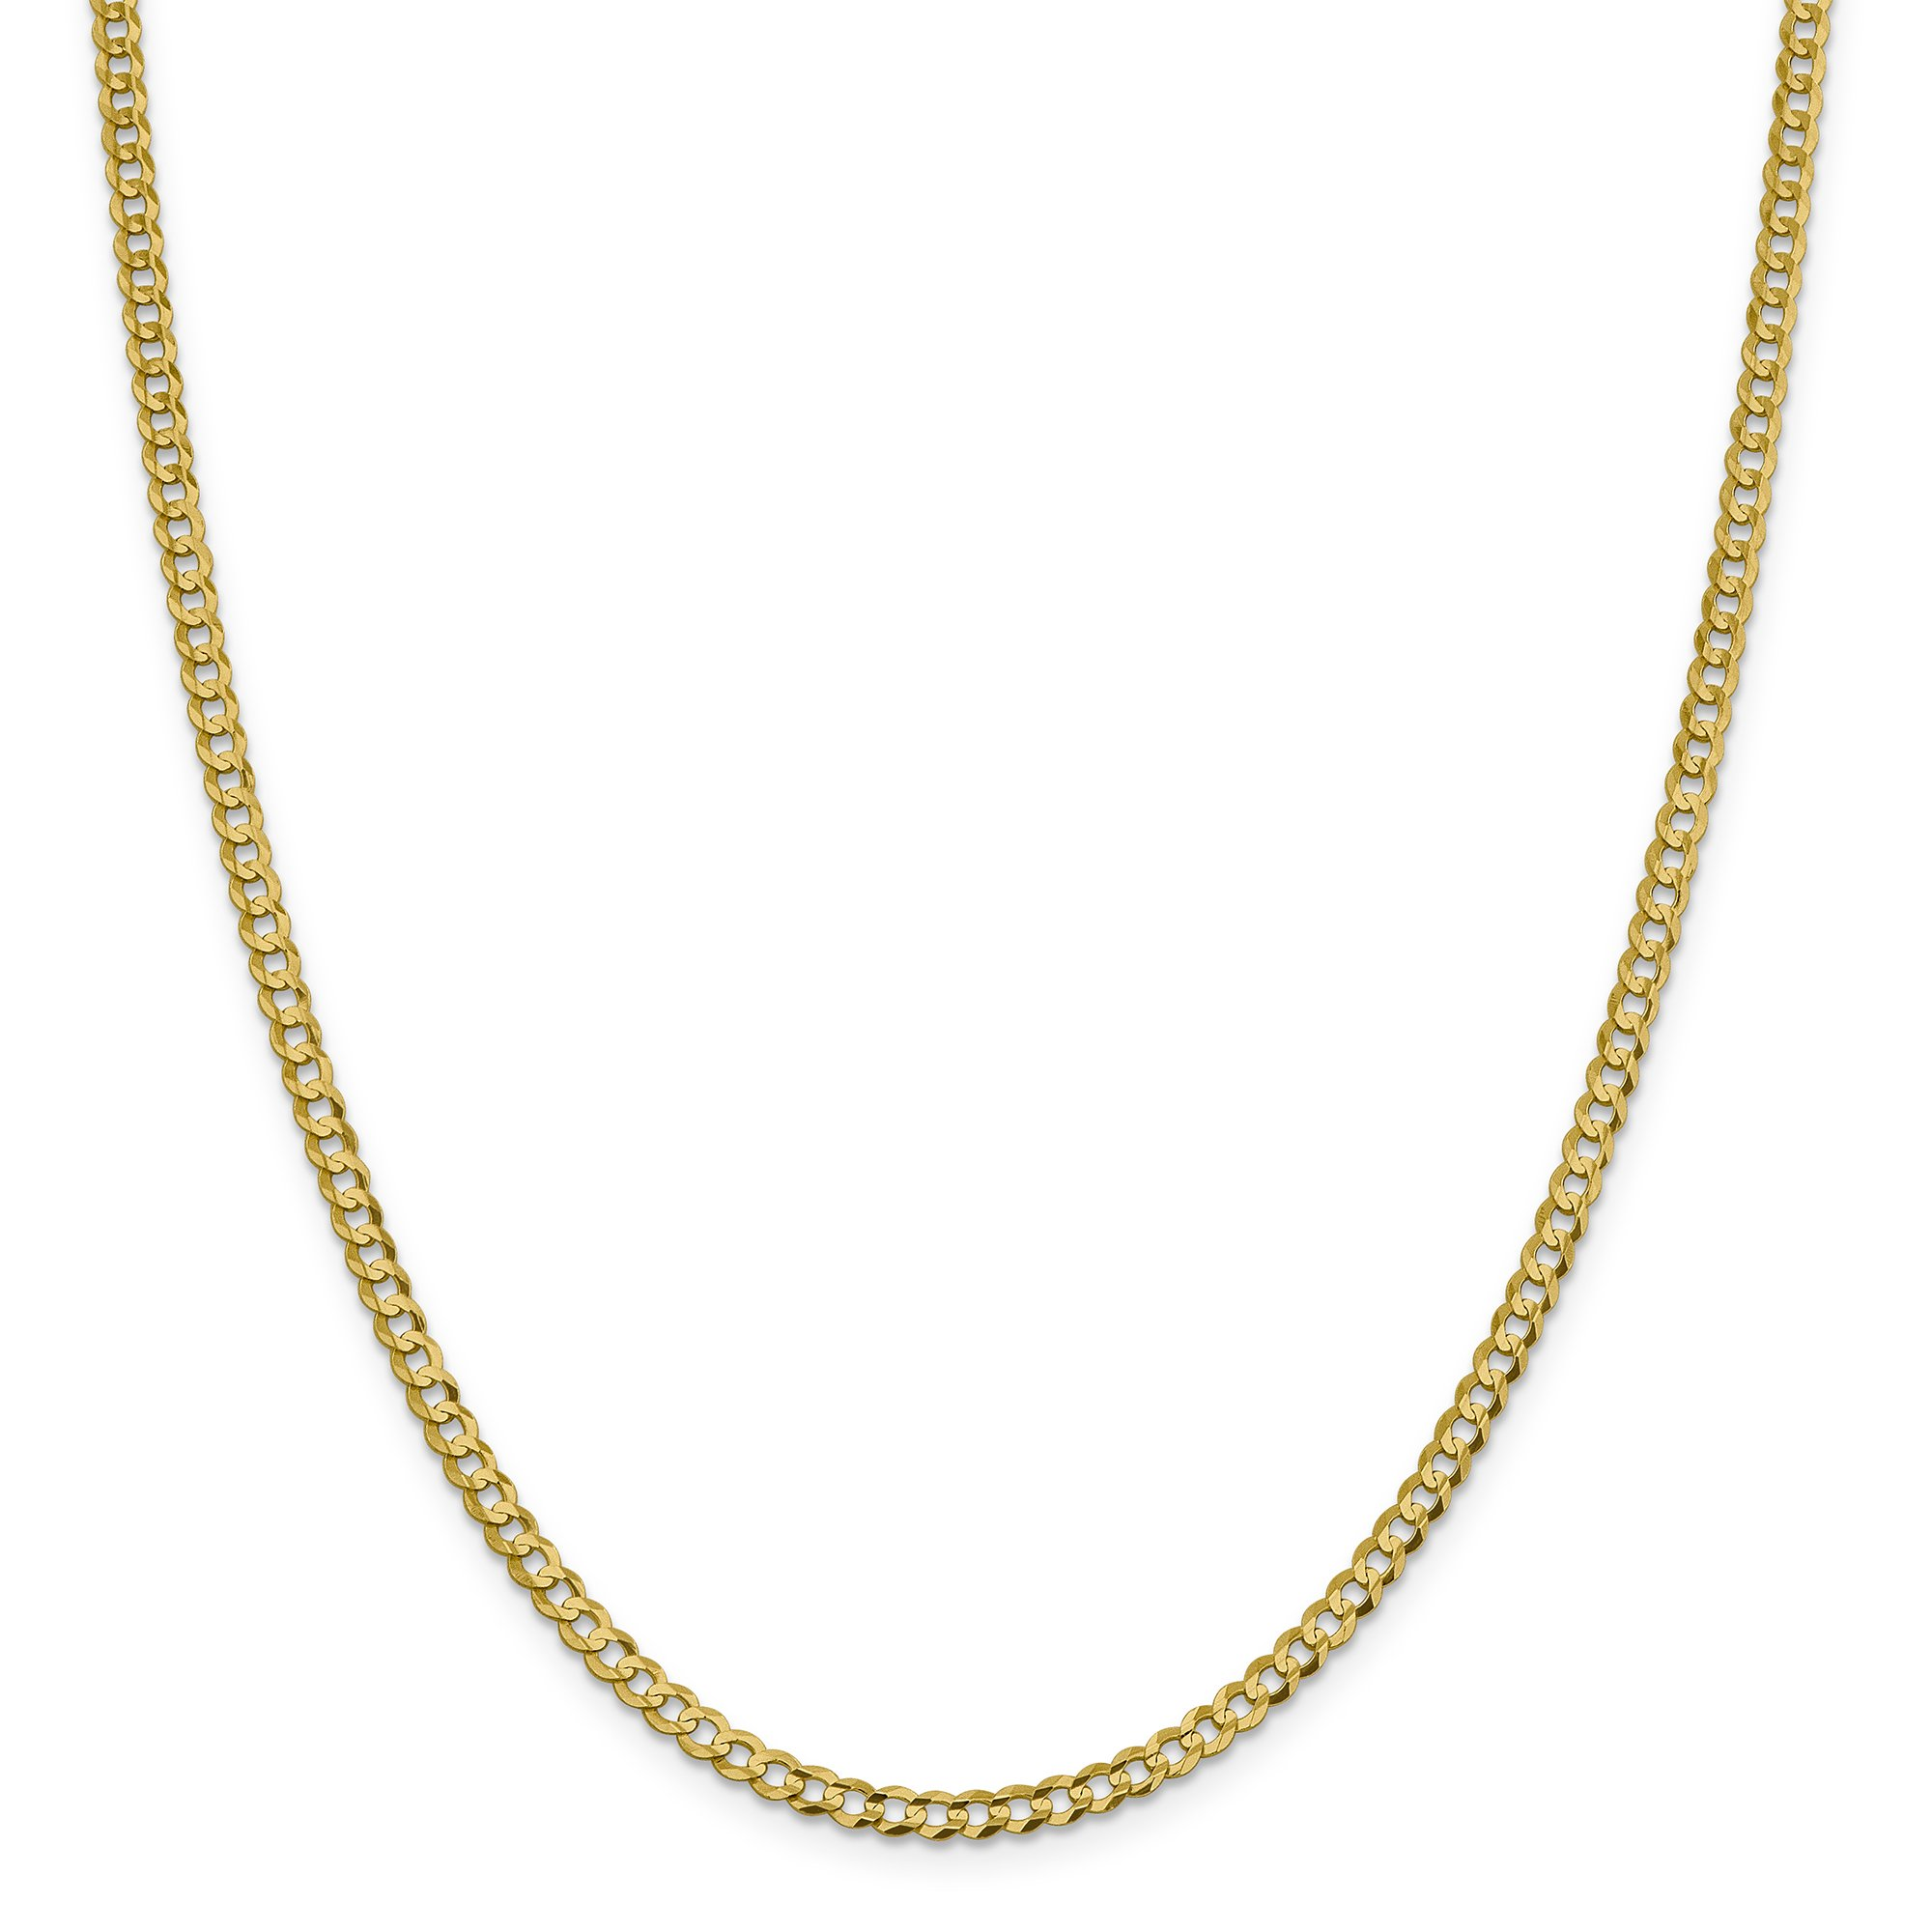 ICE CARATS 14k Yellow Gold 3.7mm Solid Flat Cuban Chain Necklace 20 Inch Curb Miami Fine Jewelry Gift Set For Women Heart